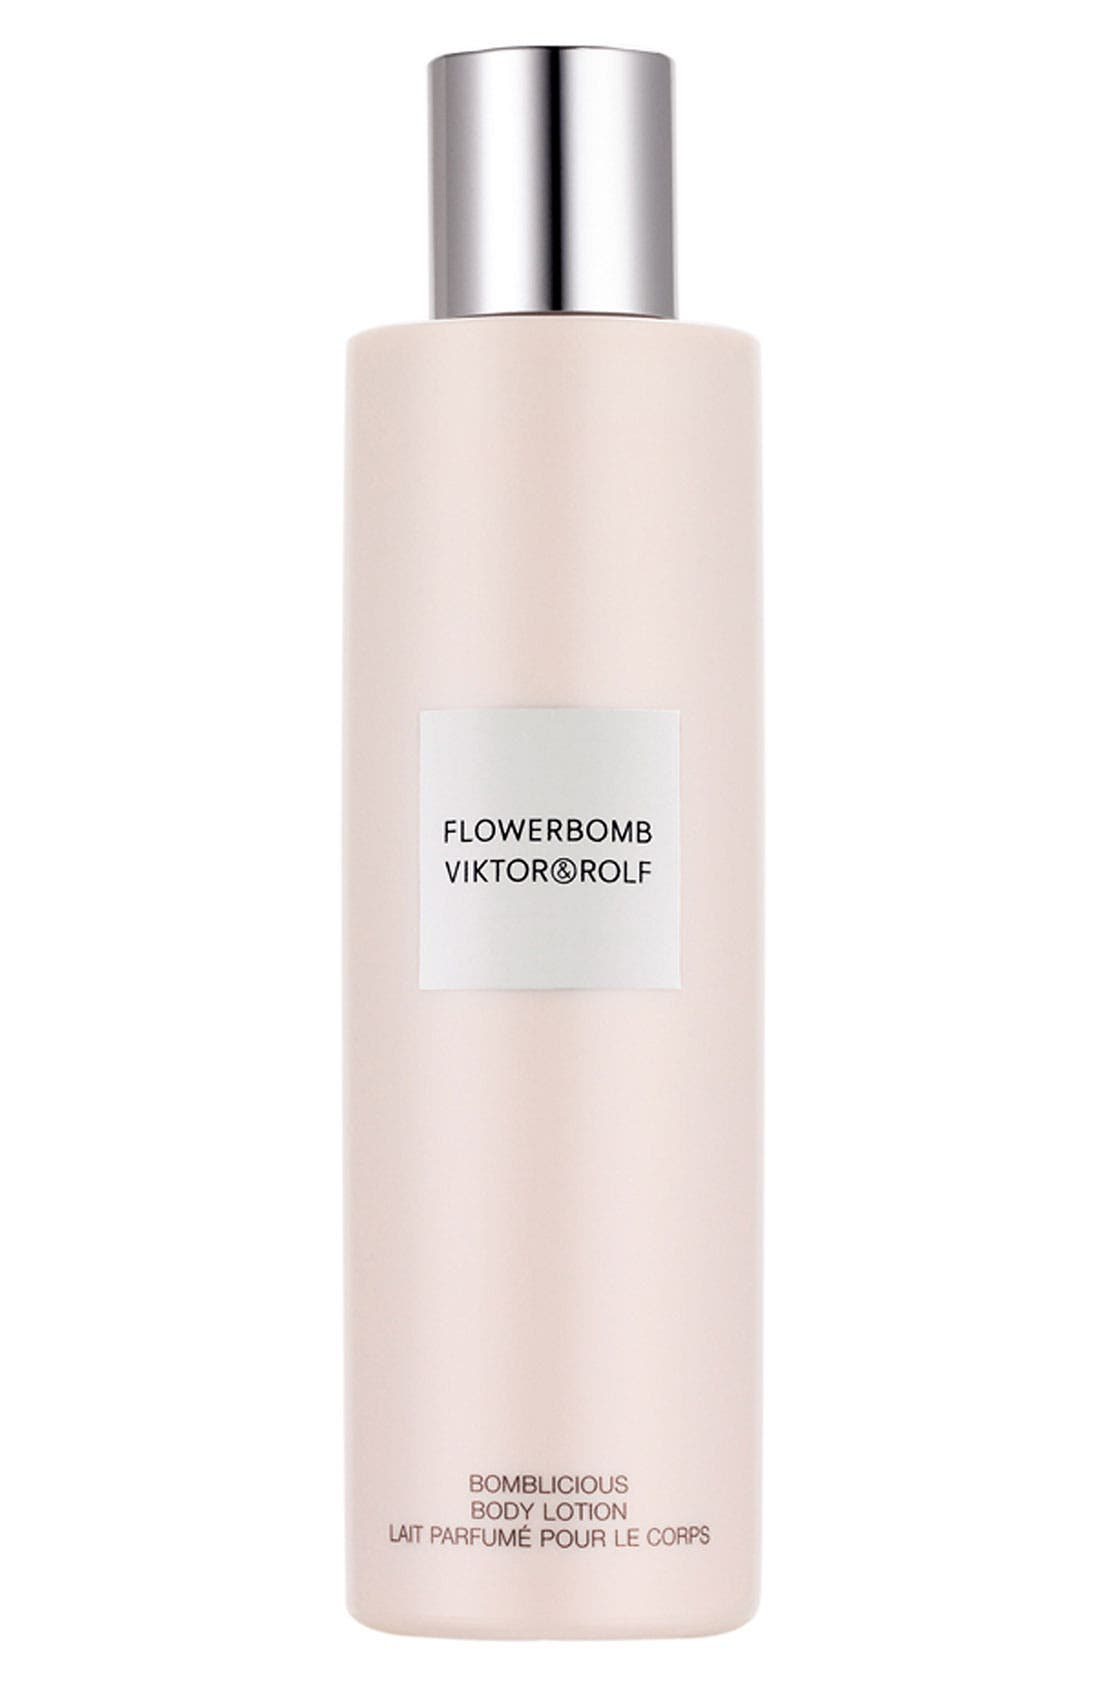 Viktor&Rolf 'Flowerbomb' Bomblicious Body Lotion